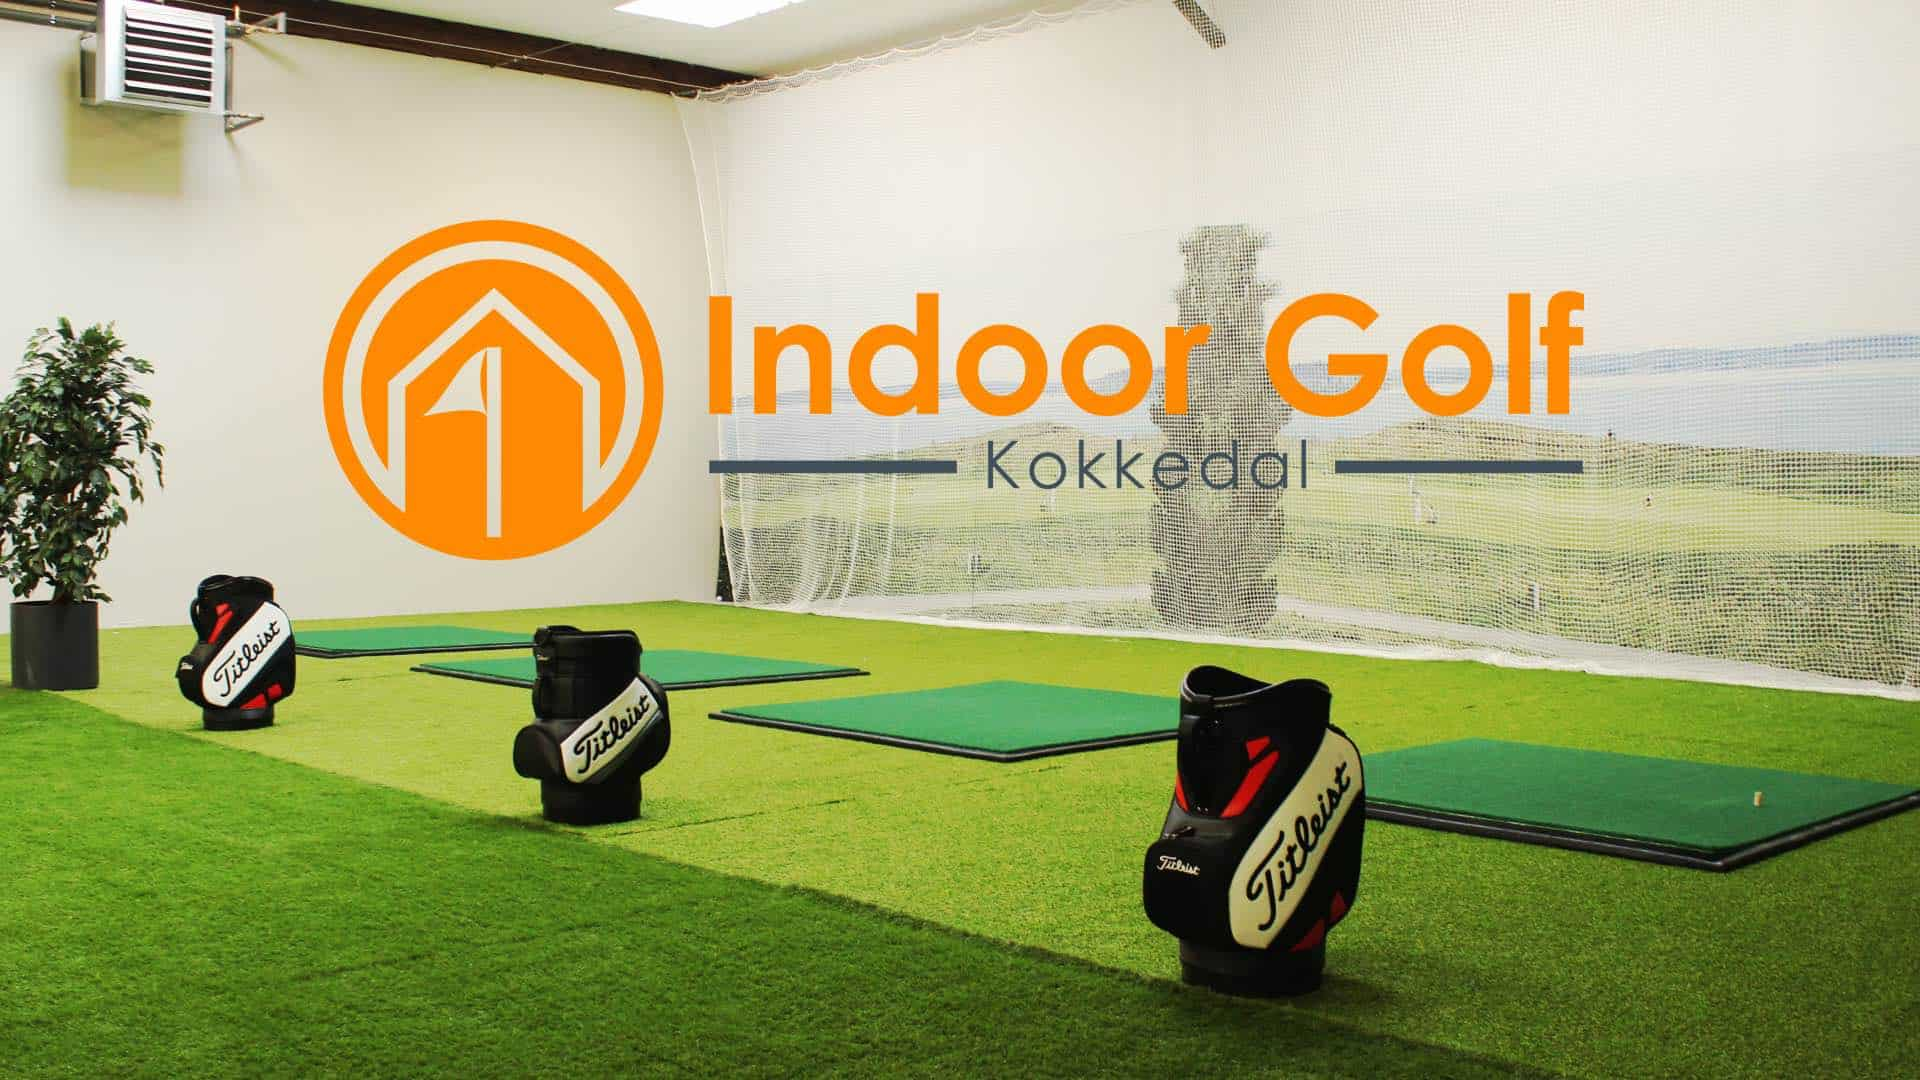 Indoor Golf Kokkedal